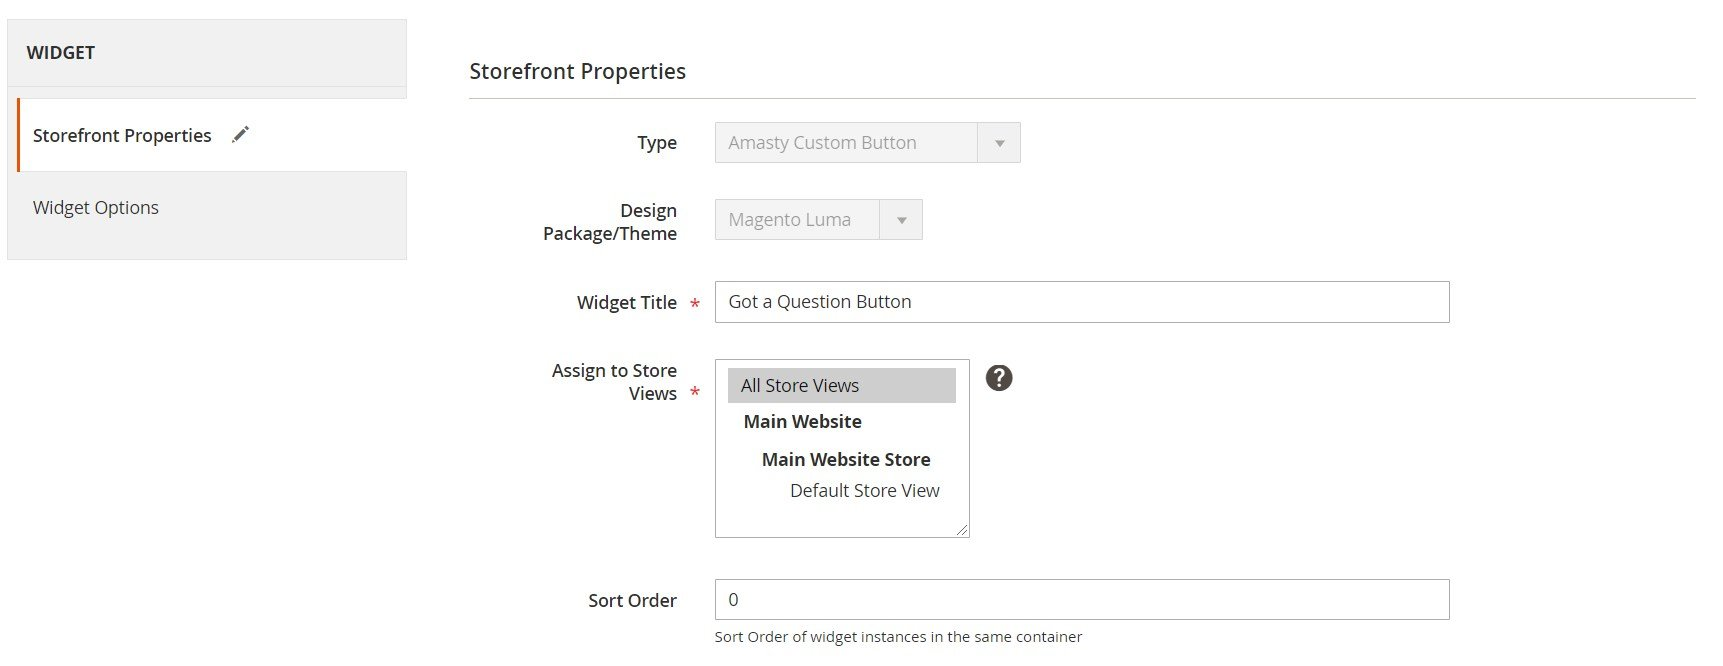 Custom Button Magento 2 module settings